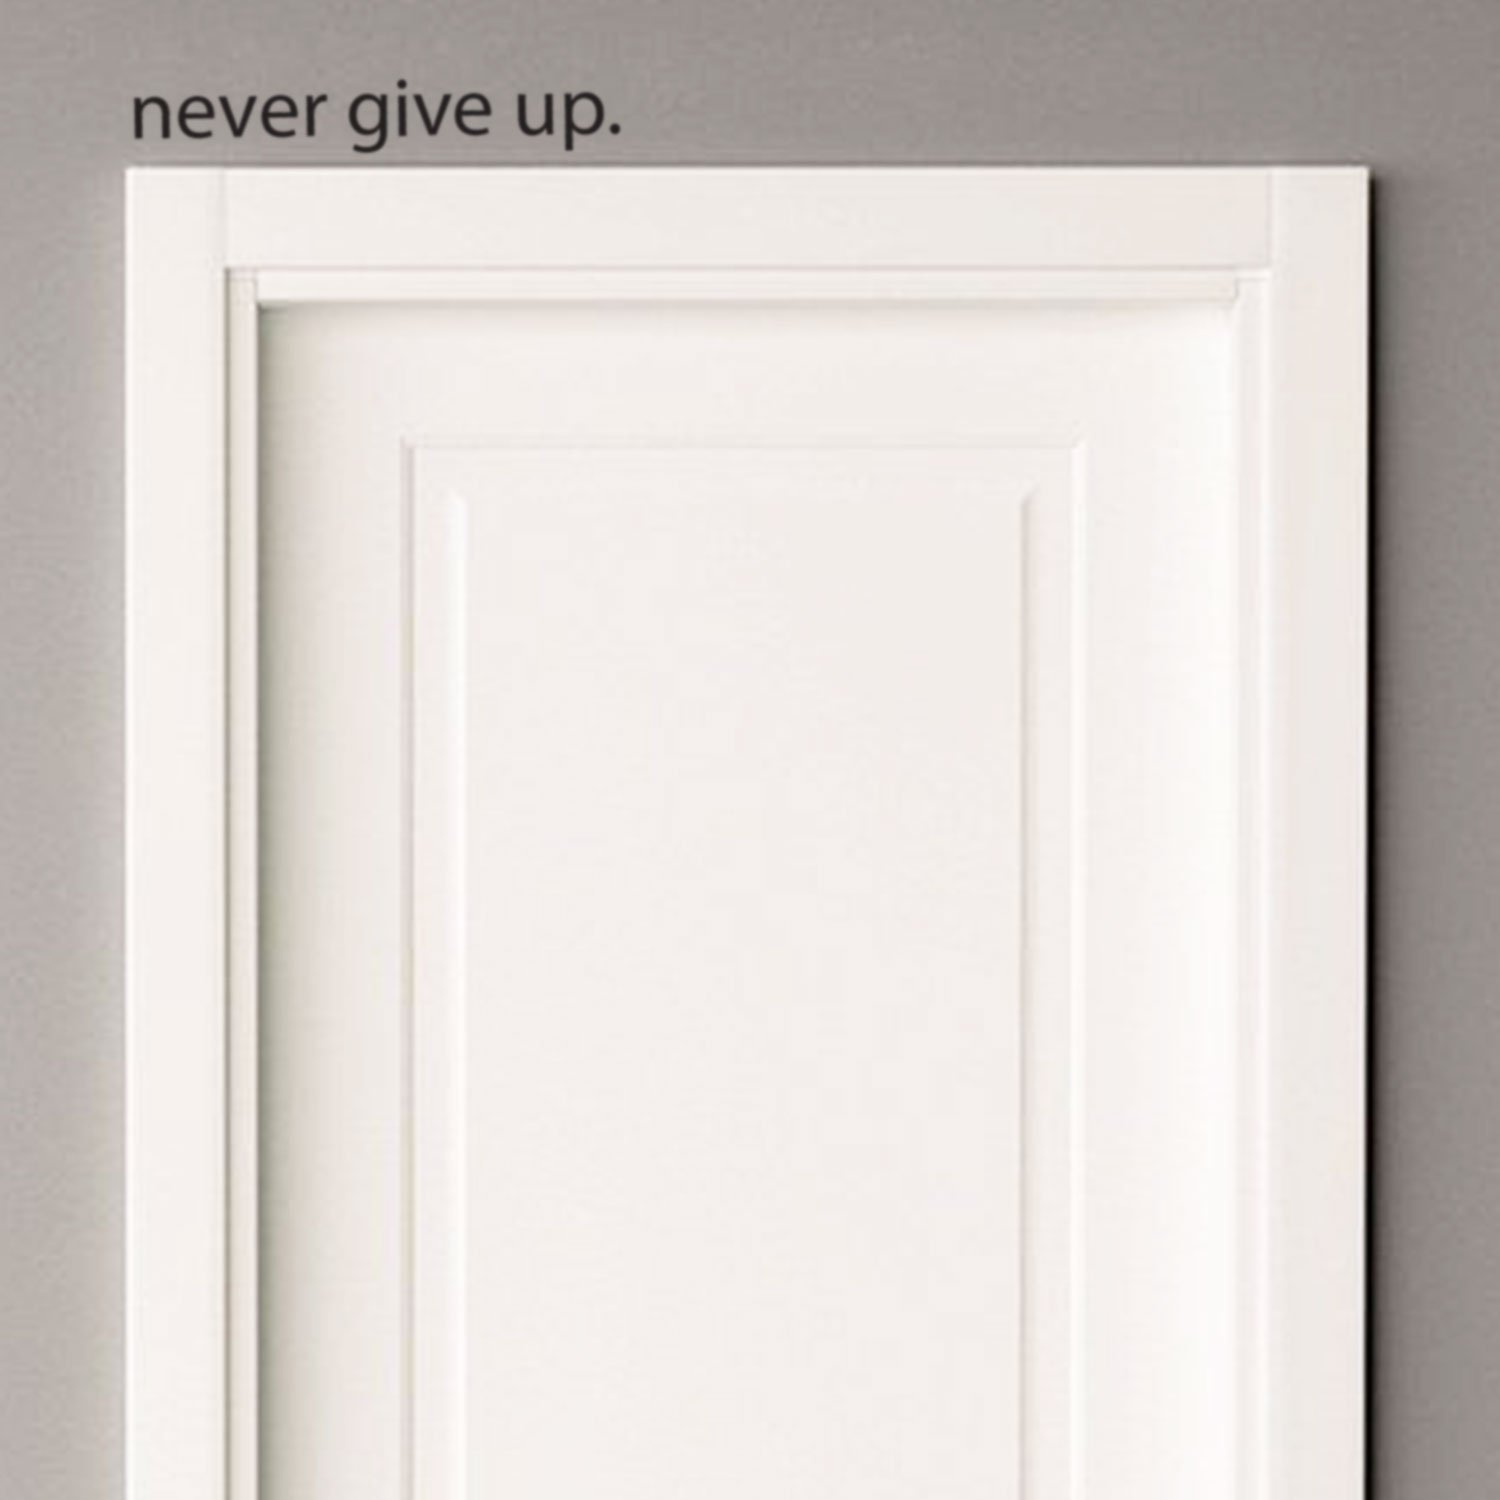 Never Give Up.. Over the Door Vinyl Wall Decal Sticker Art by Imprinted Designs (Image #1)